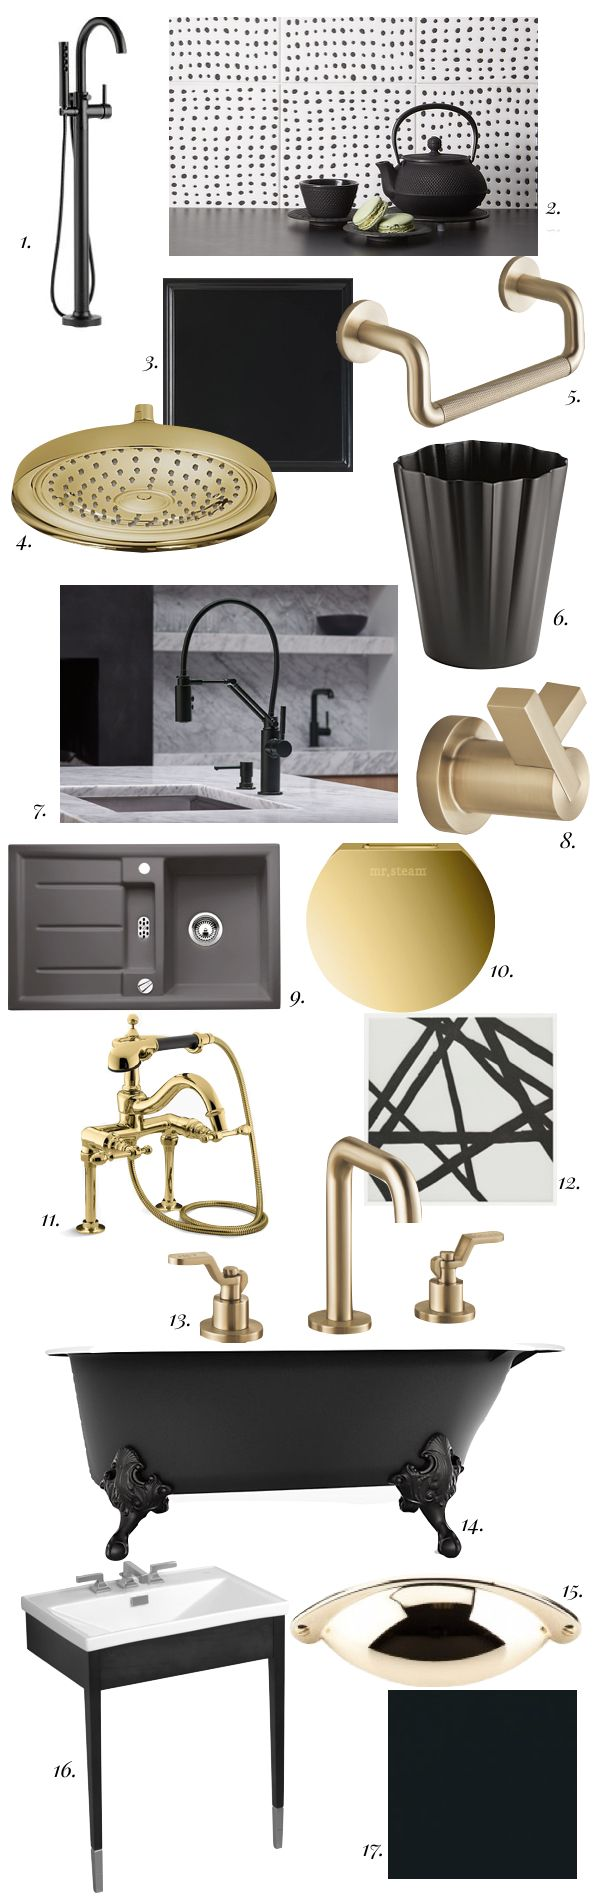 Hot Kitchen and Bath Trend: Matte Black and Brass | Pulp Design Studios. Top Knobs Somerset Cup Pull in Polished Brass featured. #cabinethardware